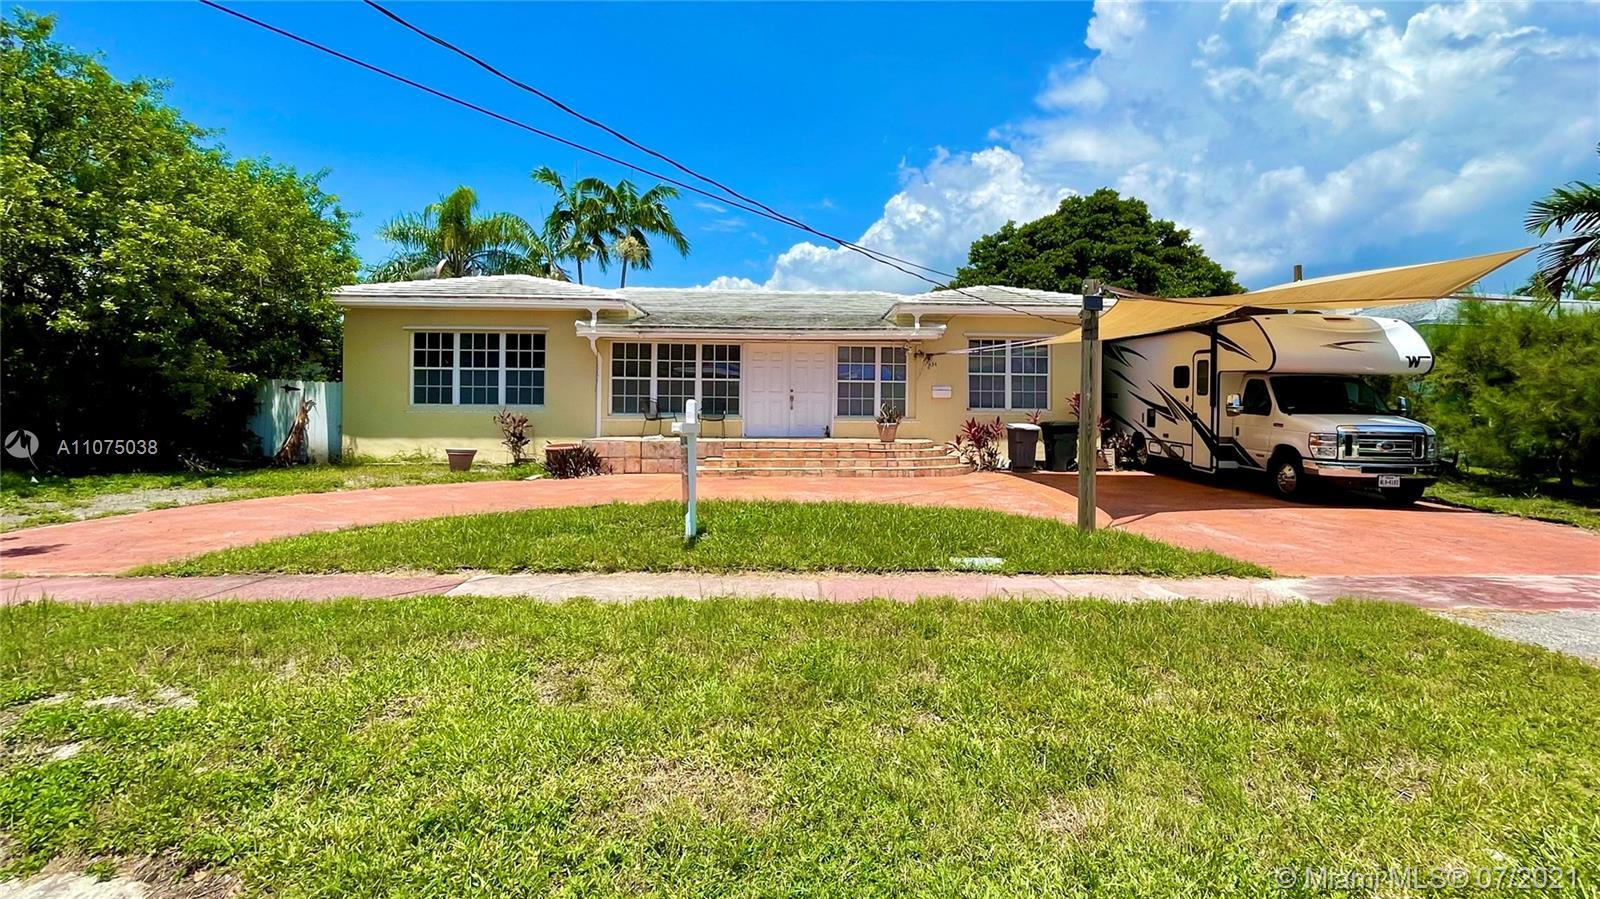 OPPORTUNITY IN MIAMI BEACH NAUTILUS ISLAND PRIME LOCATION IN THE HEART OF IT ALL WITH CLOSE HIGH-WAY